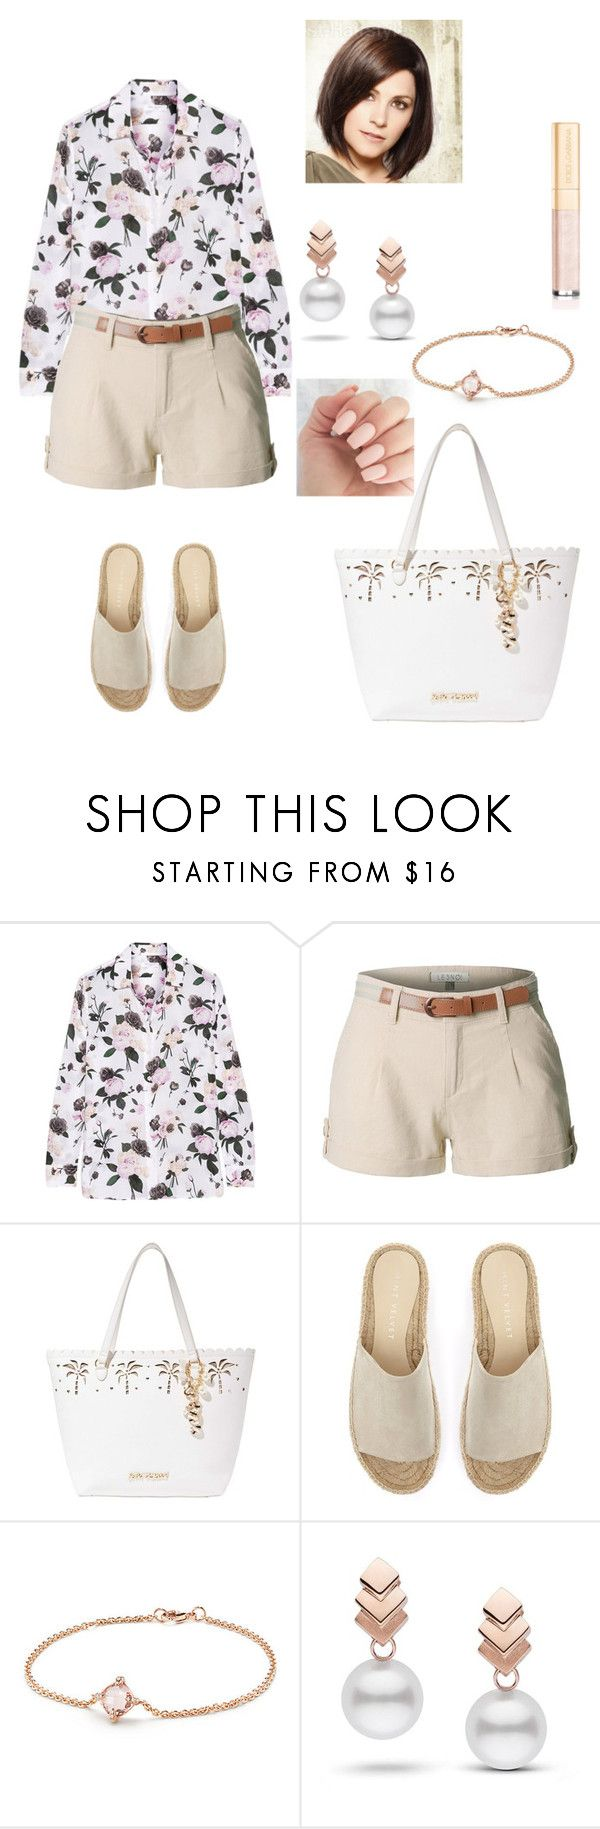 """Untitled #128"" by rebelbones ❤ liked on Polyvore featuring Equipment, LE3NO, Betsey Johnson, Mint Velvet, David Yurman, Escalier and Dolce&Gabbana"